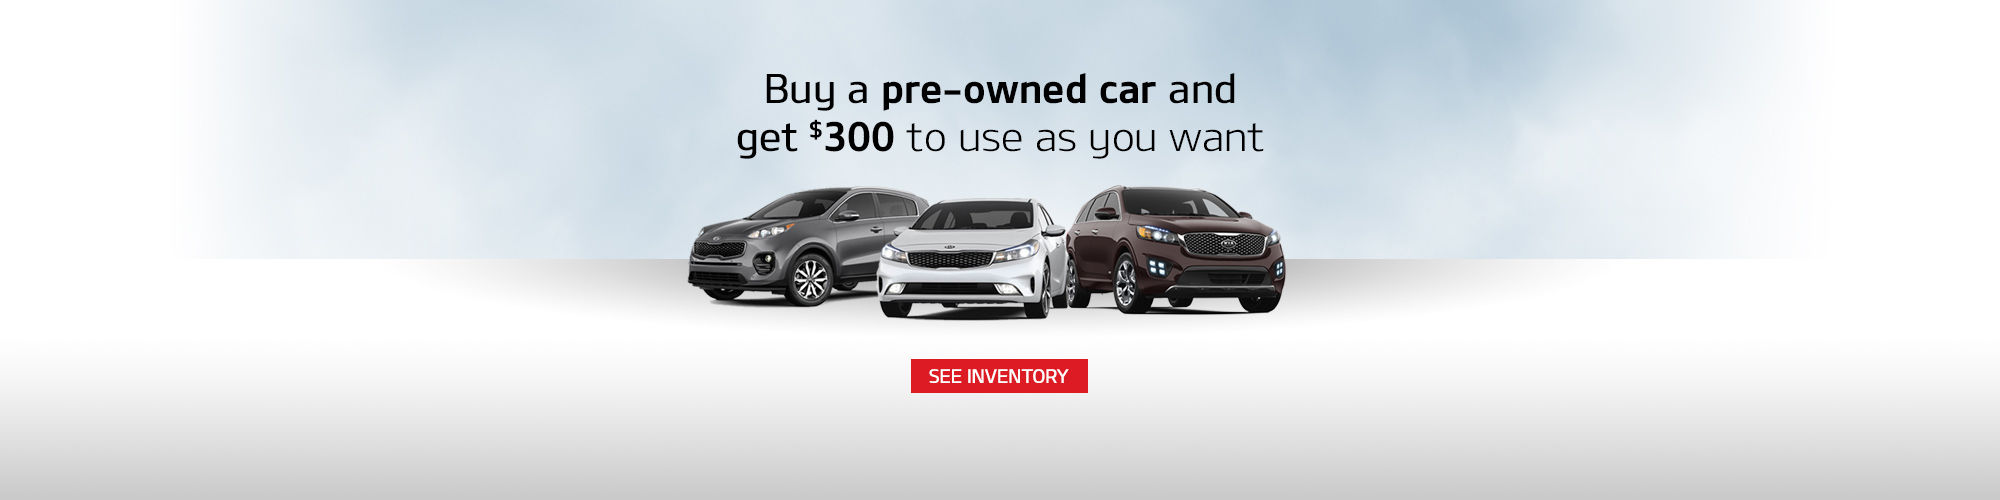 Kia Pre-Owned Vehicle Promotion